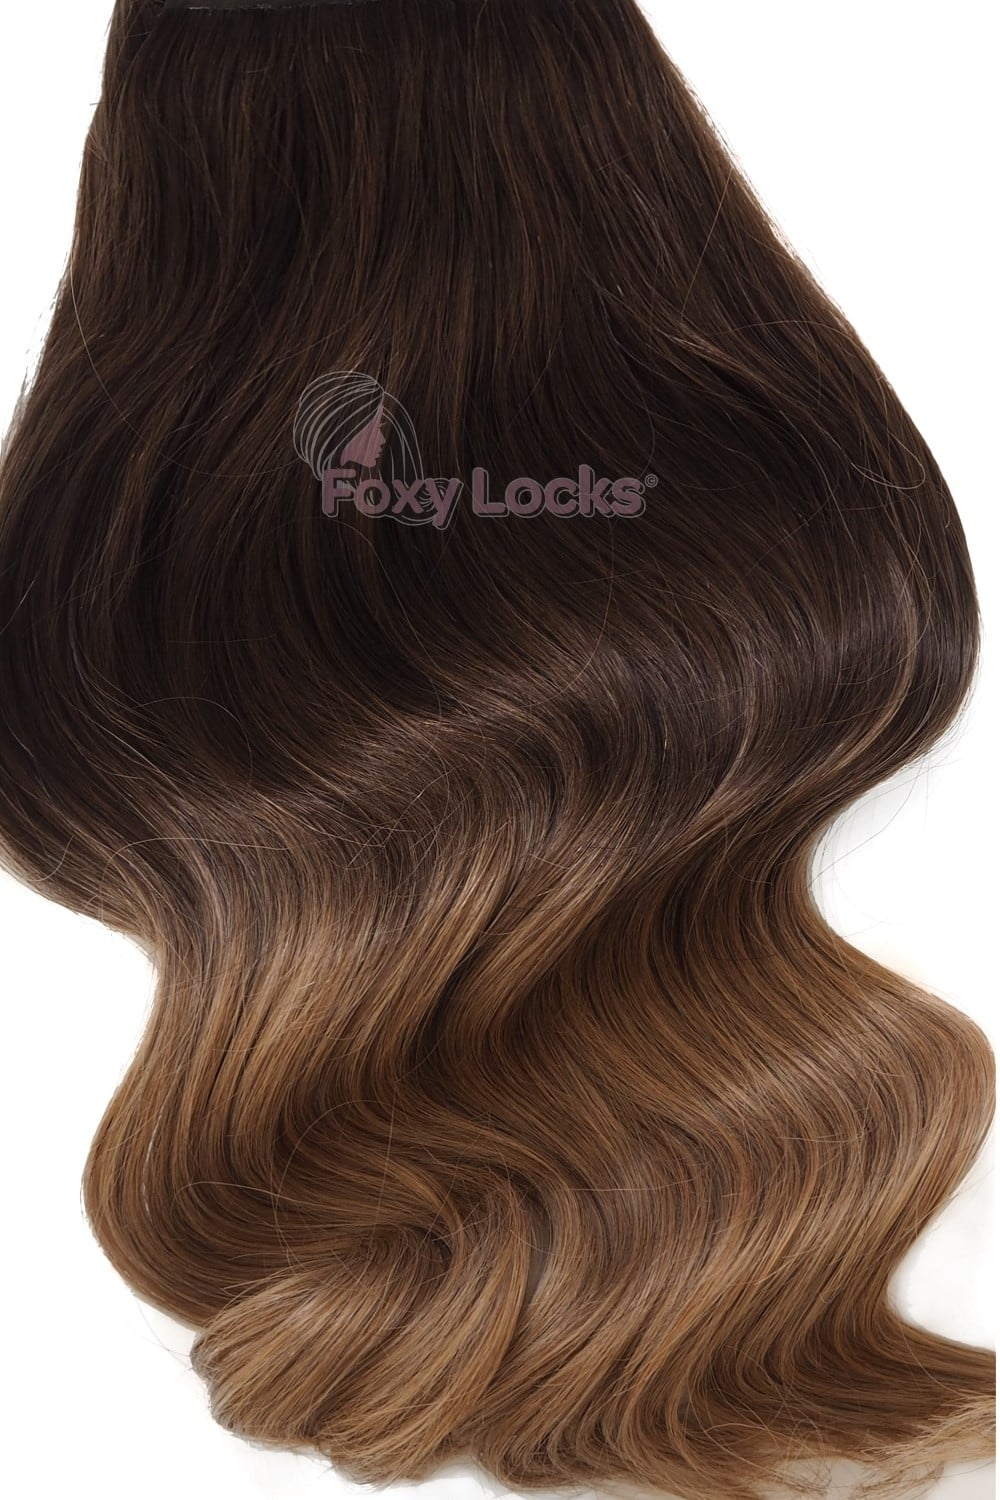 Mocha Toffee Ombre Regular 18 Clip In Human Hair Extensions 125g